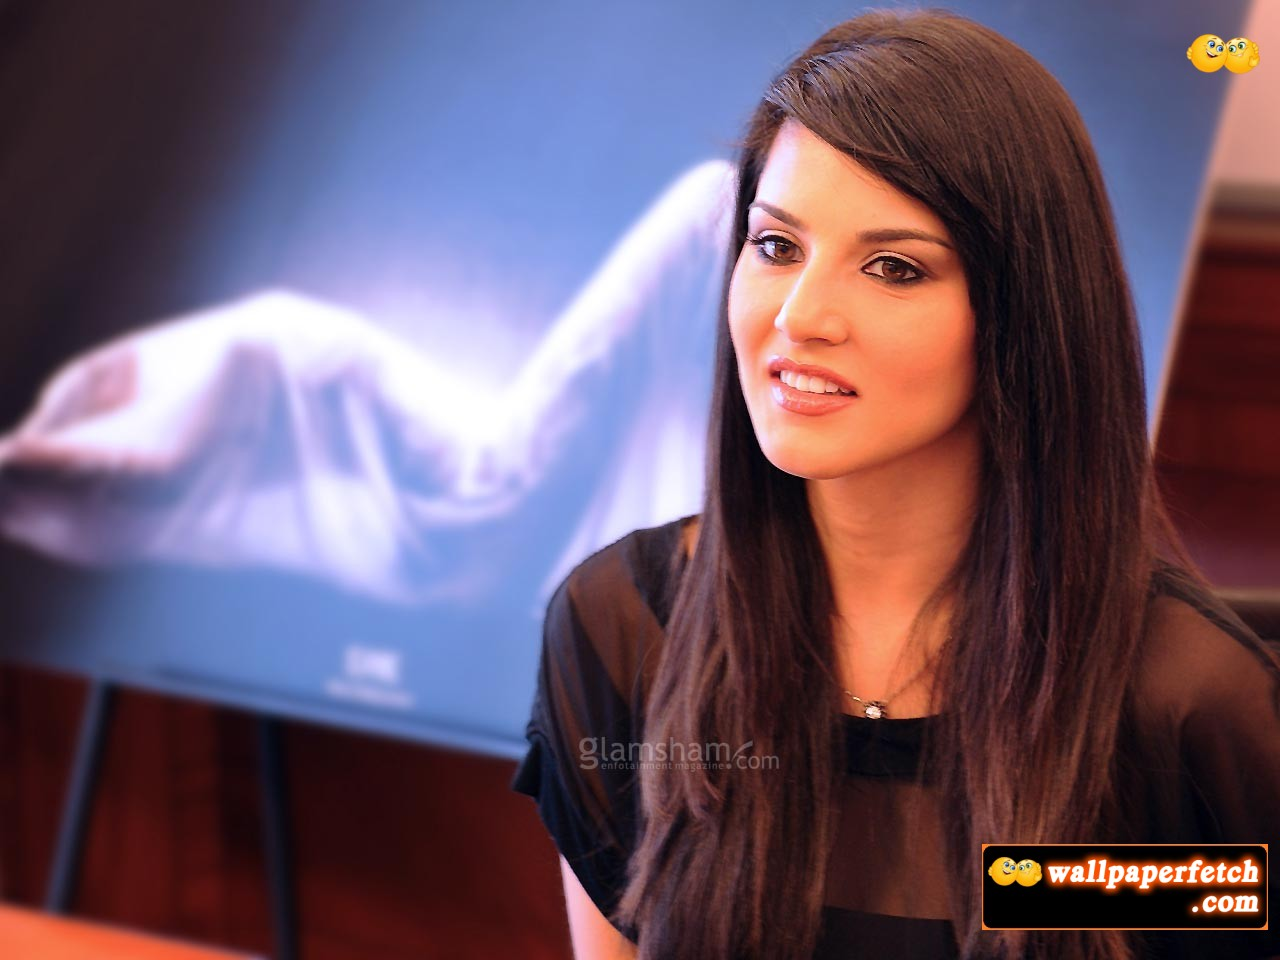 Wallpaper Fetch Sunny Leone Hot Wallpapers 2012-7172